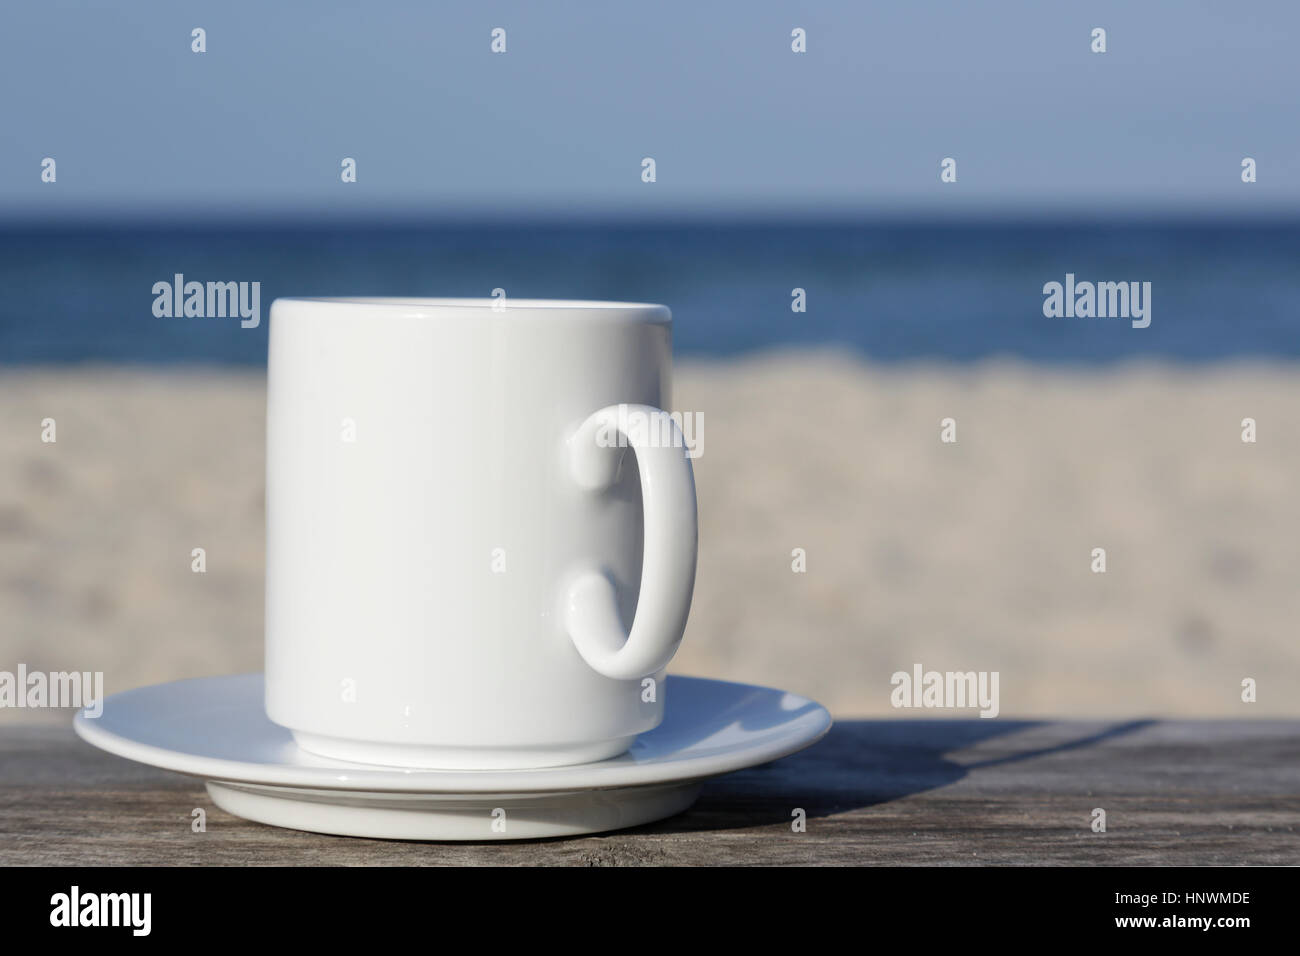 White Mug On A Saucer Stands On A Wooden Table Which Can Be Seen On